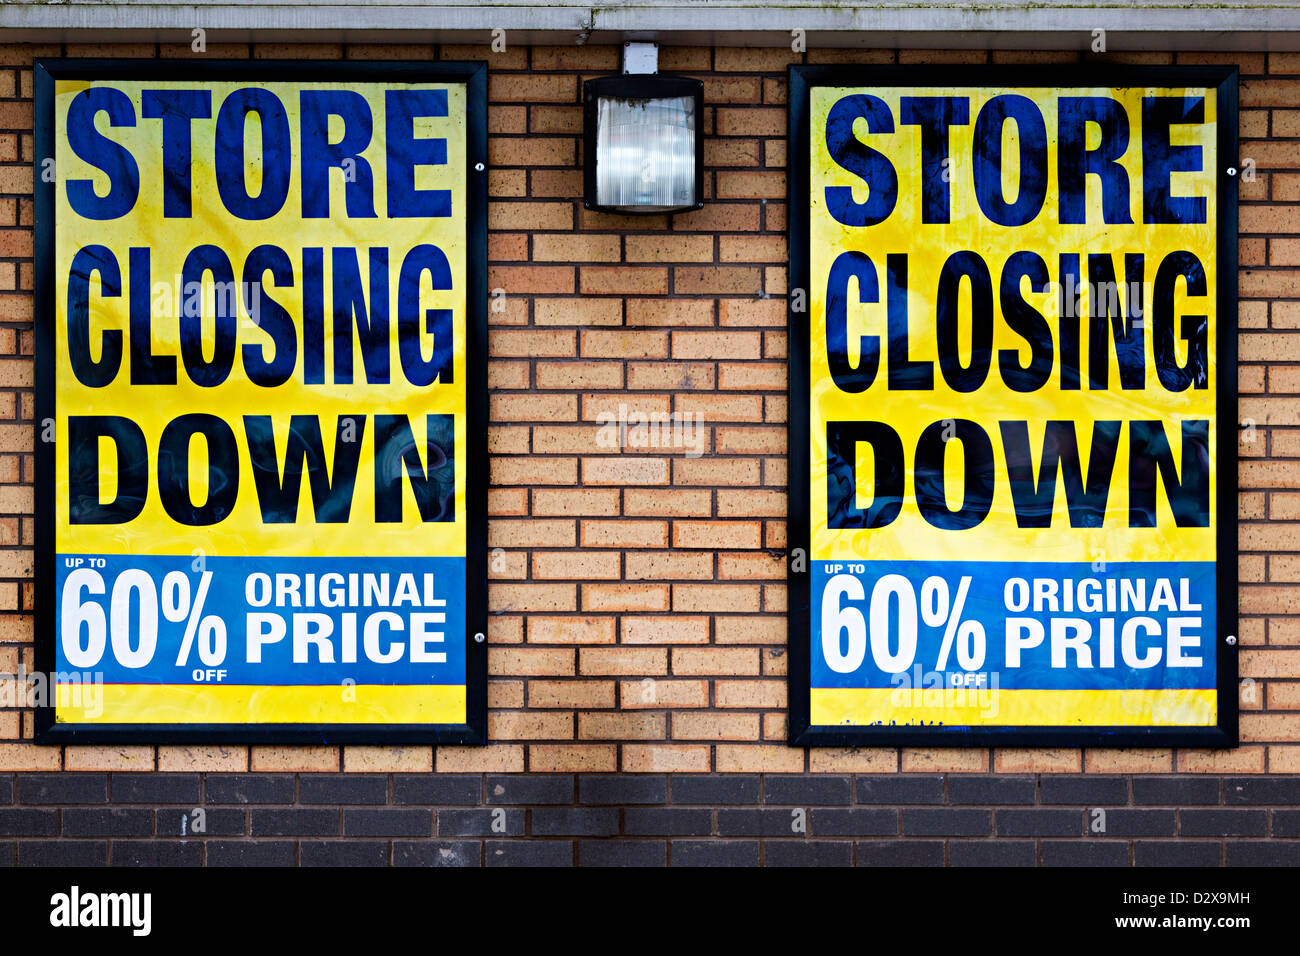 Store closing down sign with discount 60 per cent on Comet store, Wales, UK - Stock Image